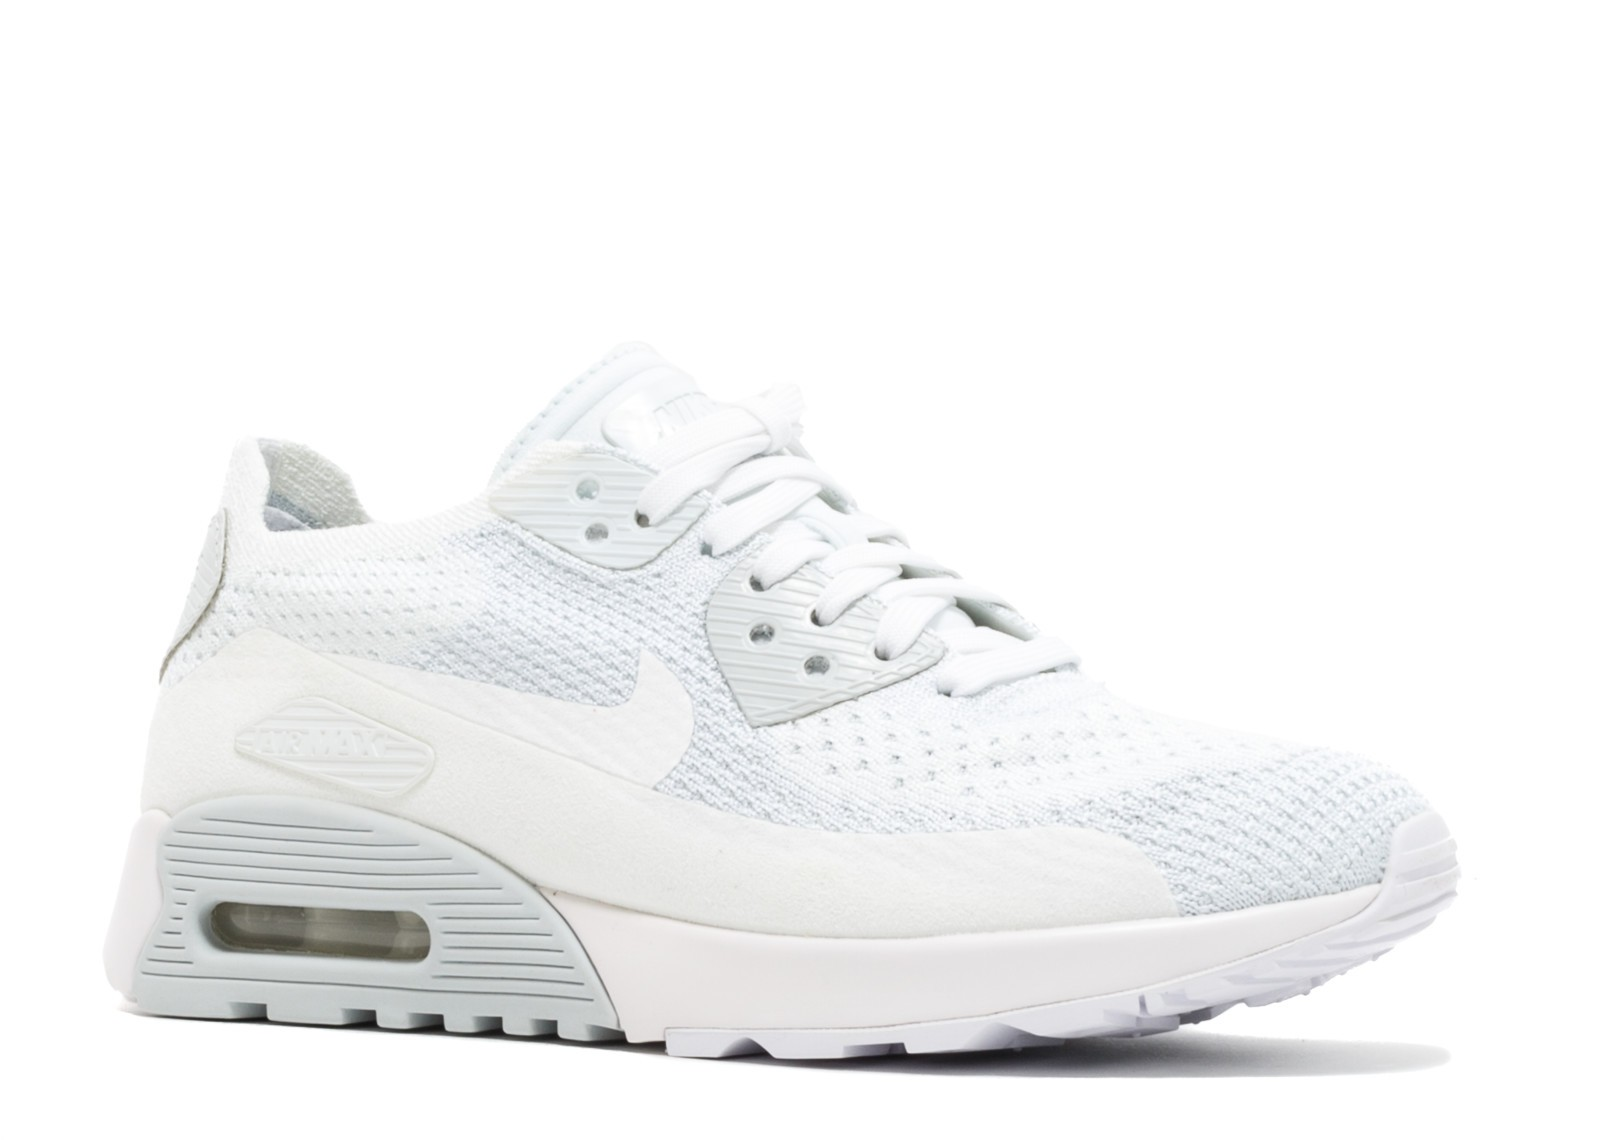 W Nike Air Max 90 Ultra 2.0 Flyknit Platinum White Pure 881109 104